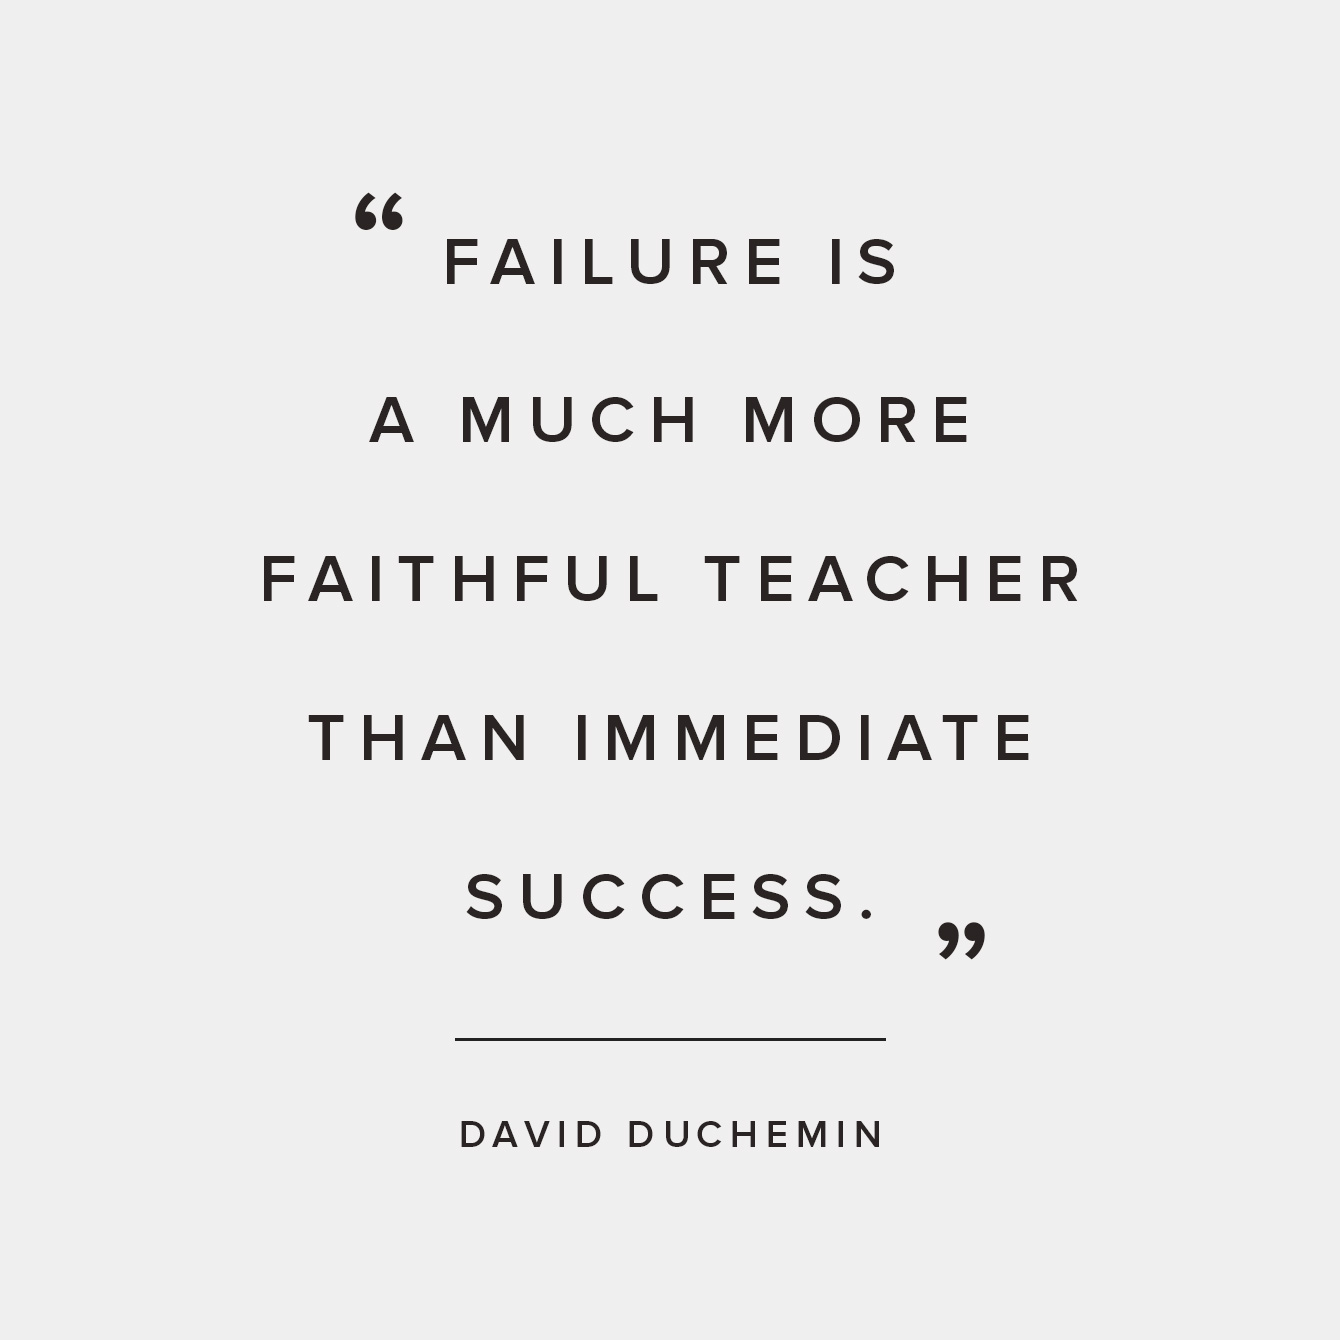 Most Famous Quotes 87 Most Famous Failure Quotes & Sayings